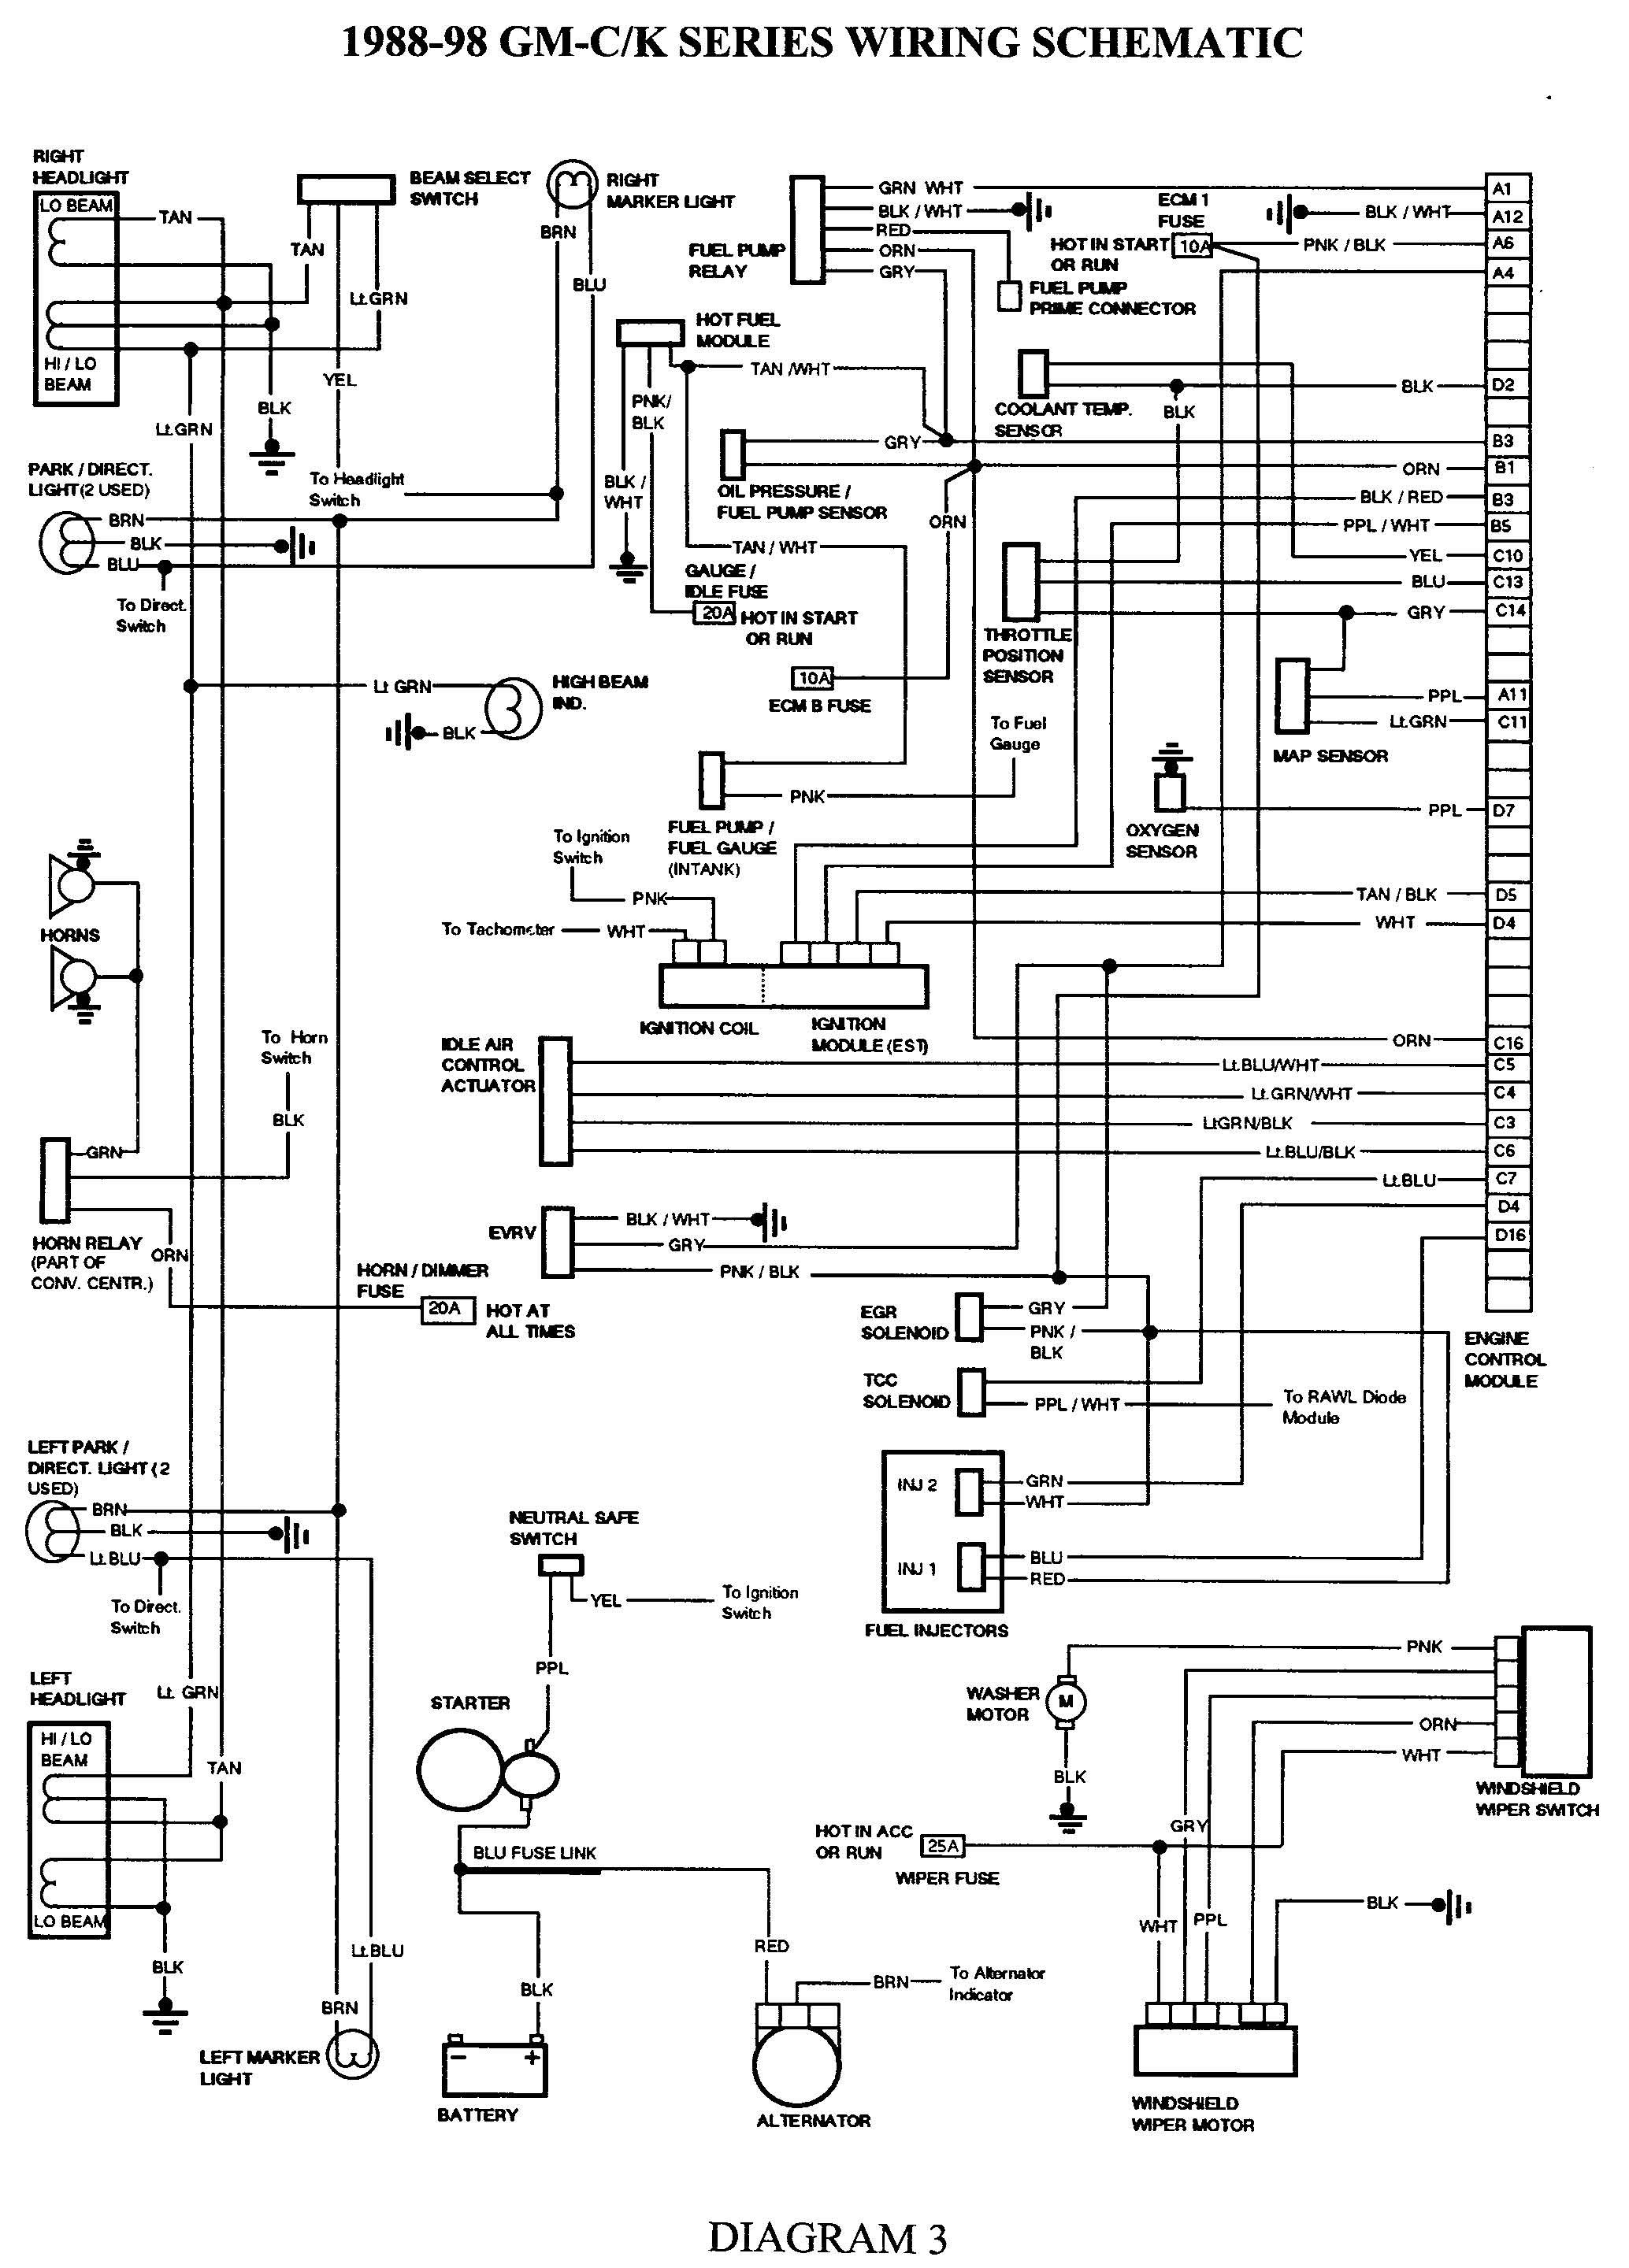 medium resolution of 2012 gmc wiring diagram wiring diagram schematics international 4700 dt466e diagram 1989 international wiring diagram